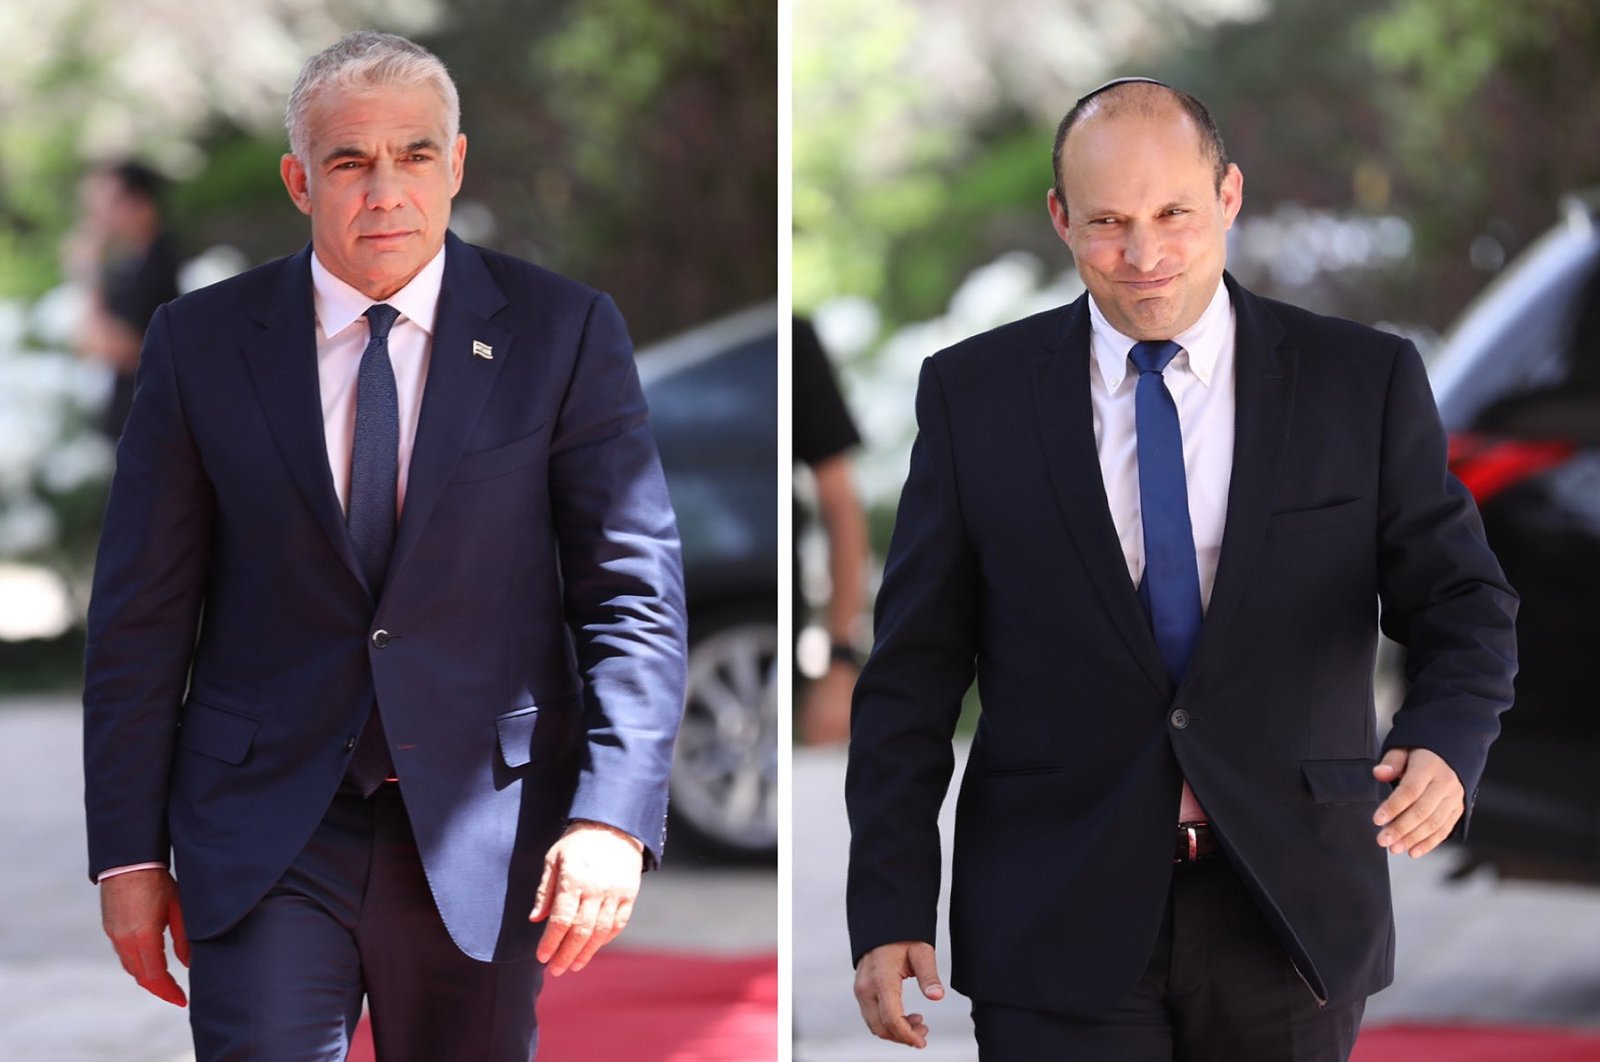 A combination photograph shows the leader of the Yamina party, Naftali Bennett (R) and leader of the Yesh Atid party, Yair Lapid, both entering the residence of President Rivlin, in Jerusalem, Israel, May 5, 2021. (EPA-EFE Photo)